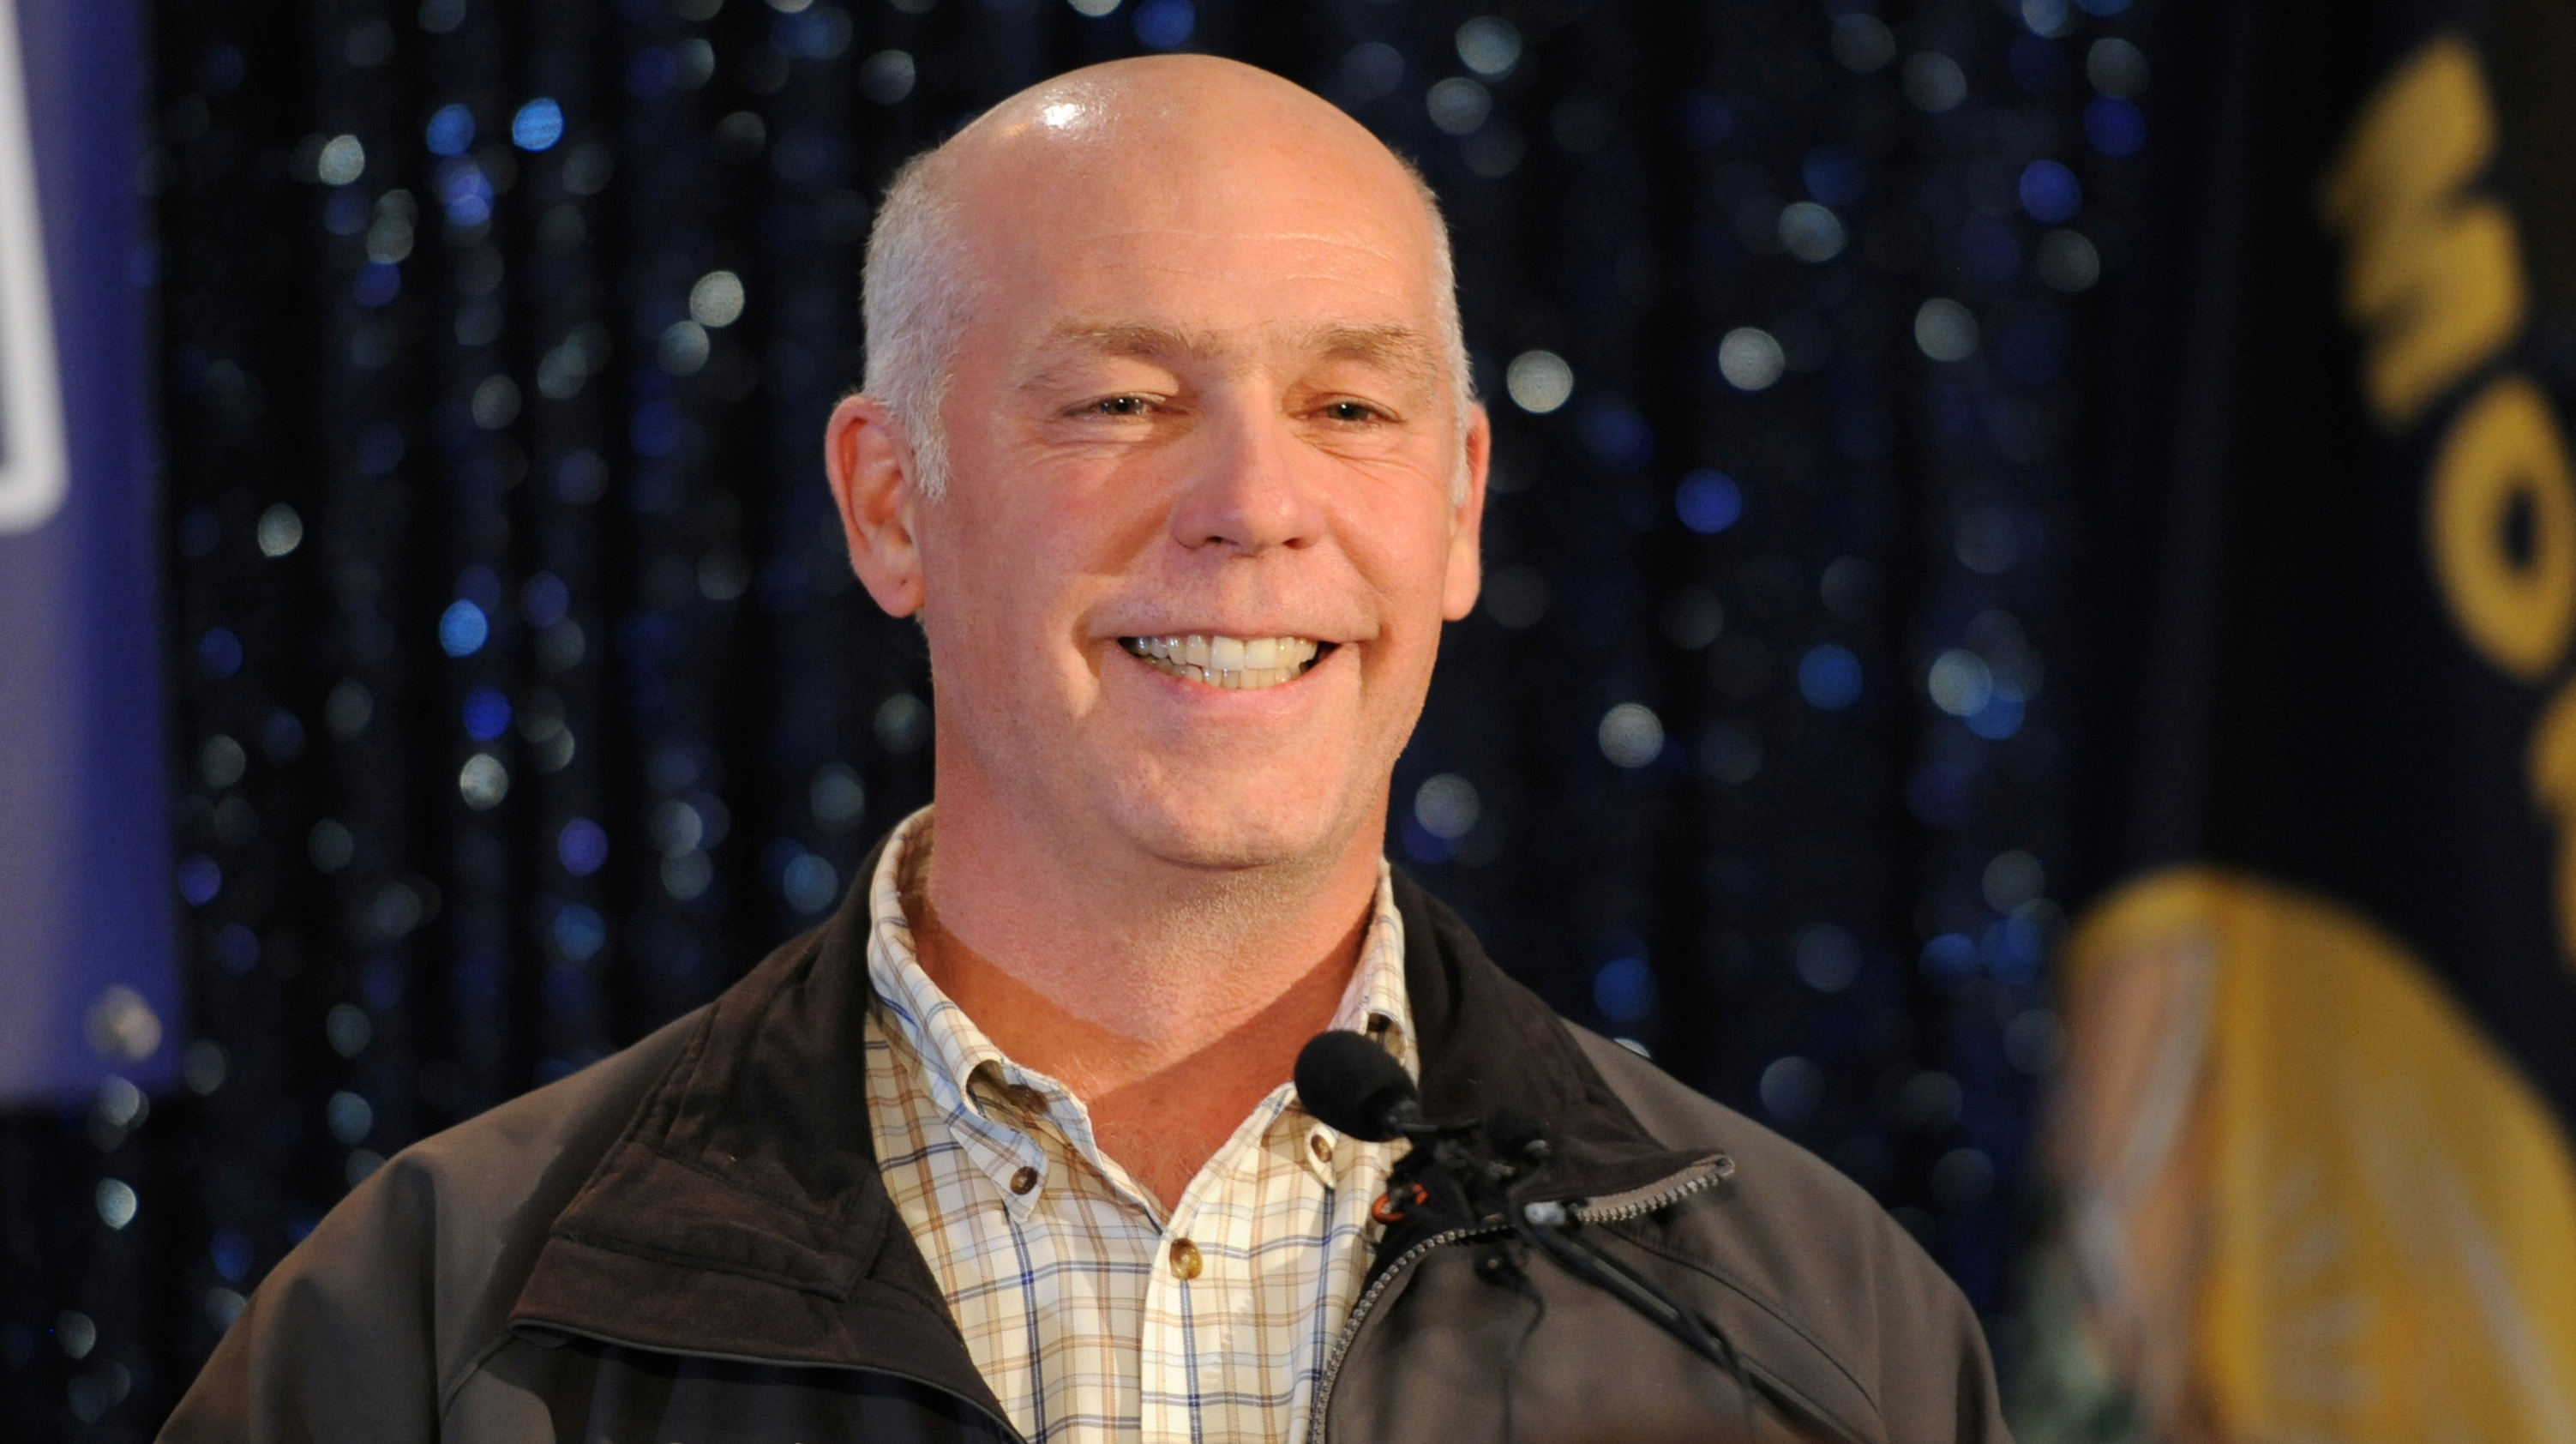 Representative elect Greg Gianforte accepts the crowds congratulations during his victory speech after winning the special congressional election in Bozeman, Montana May 25, 2017, during a special congressional election called after former Rep. Ryan Zinke was appointed to lead the Interior Department.